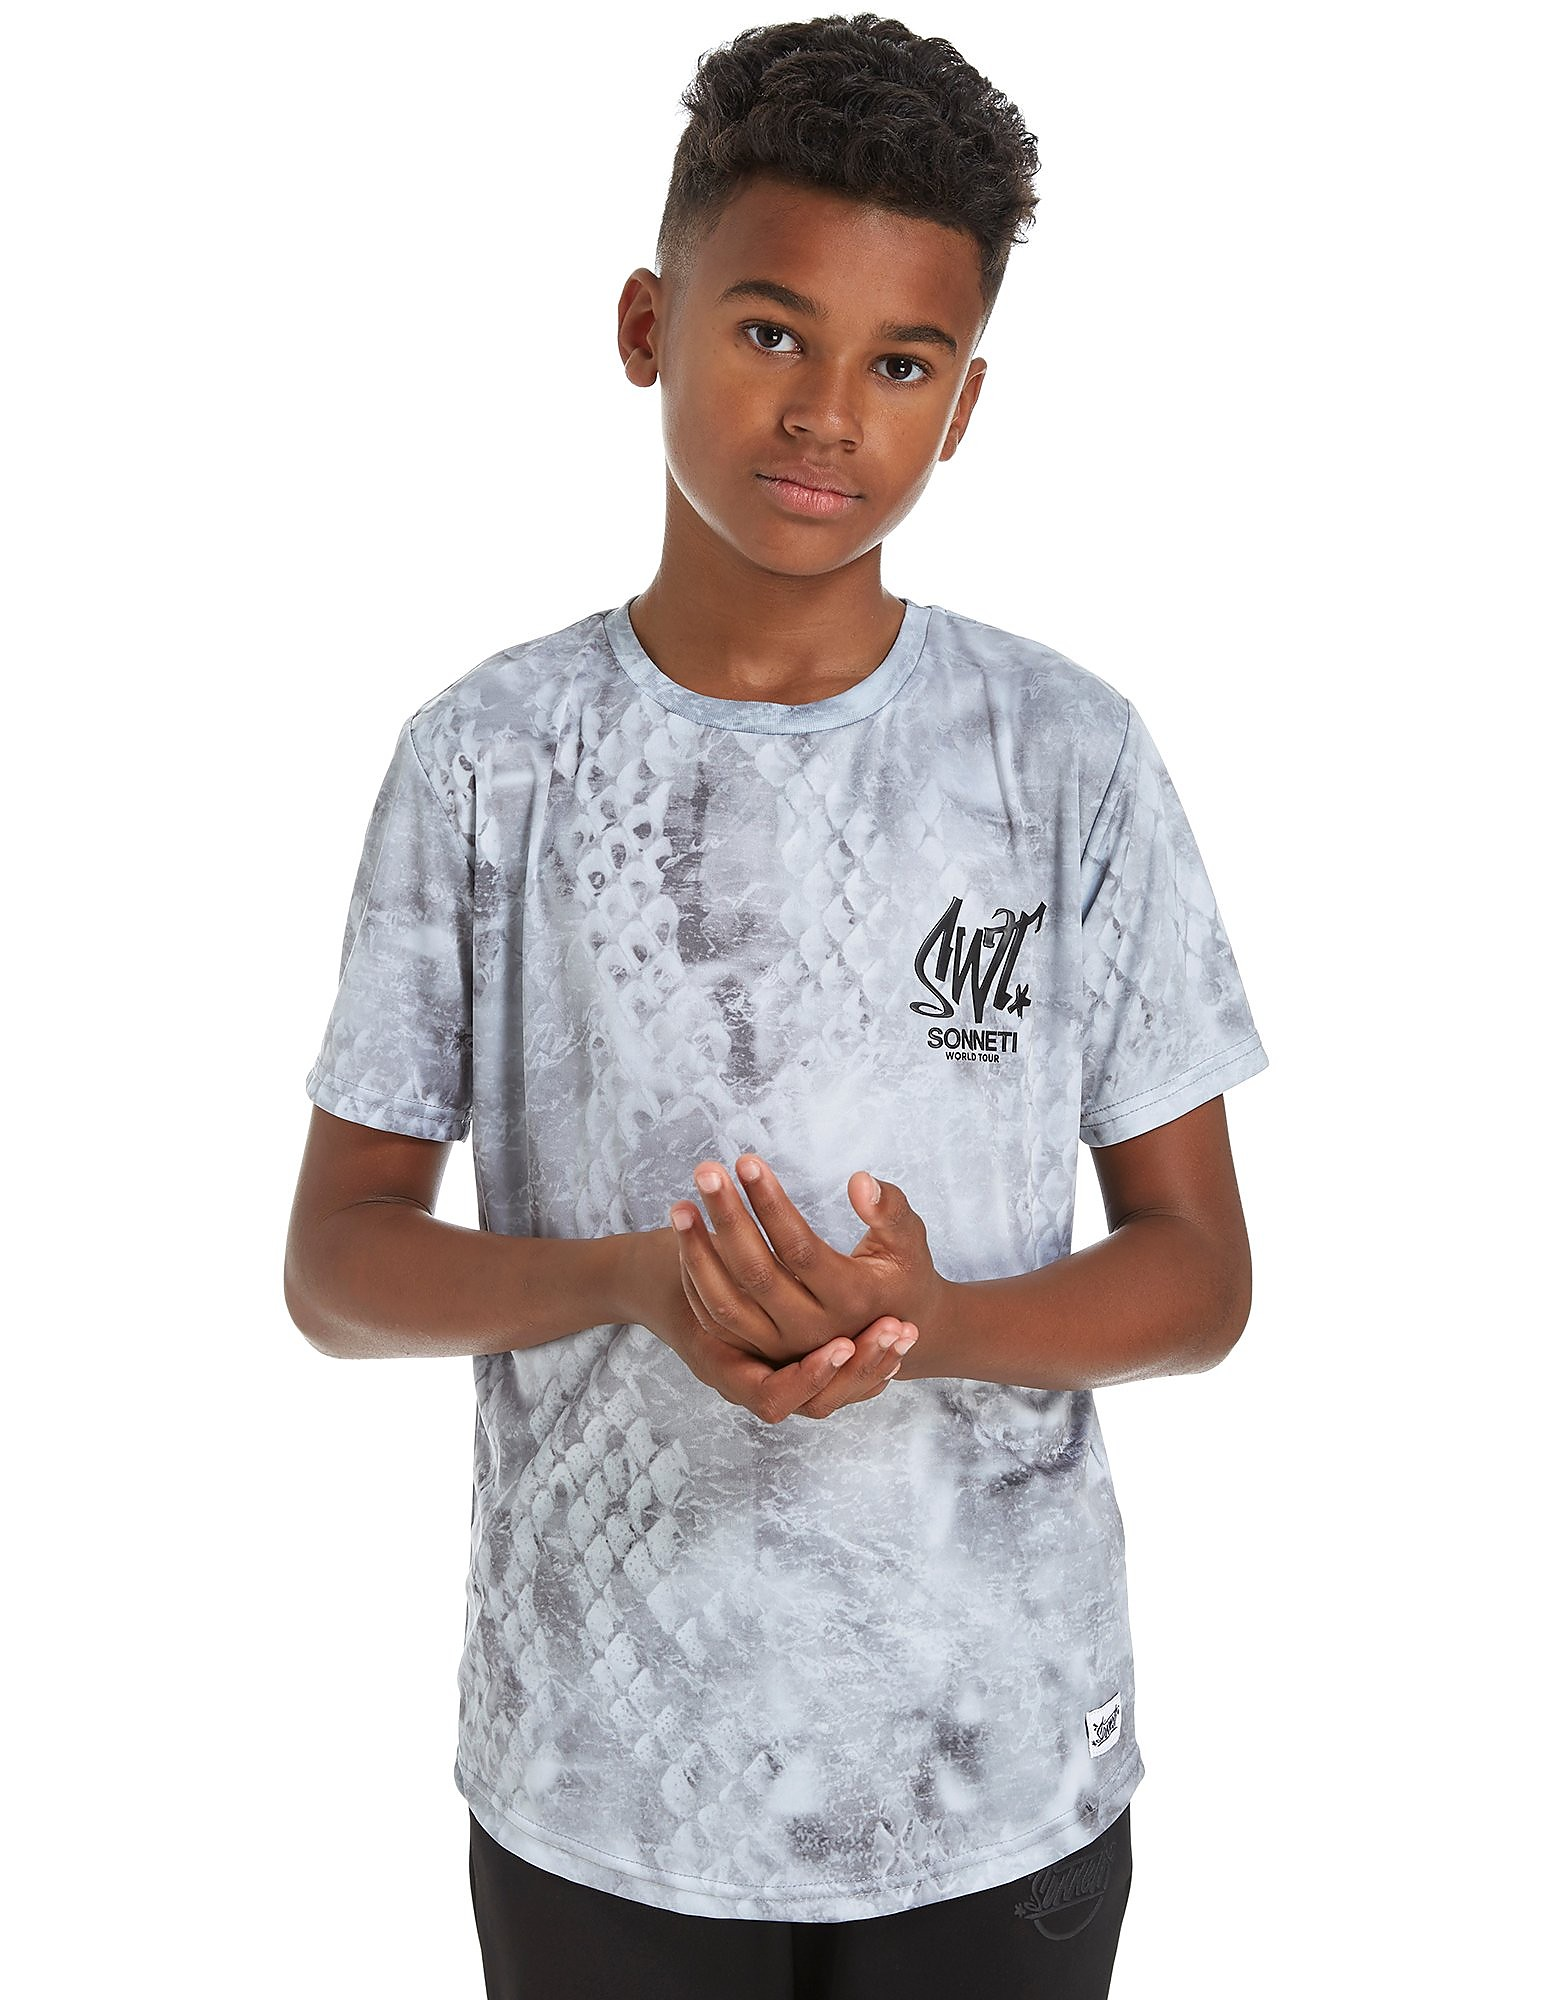 Sonneti Snake Skin T-Shirt Junior